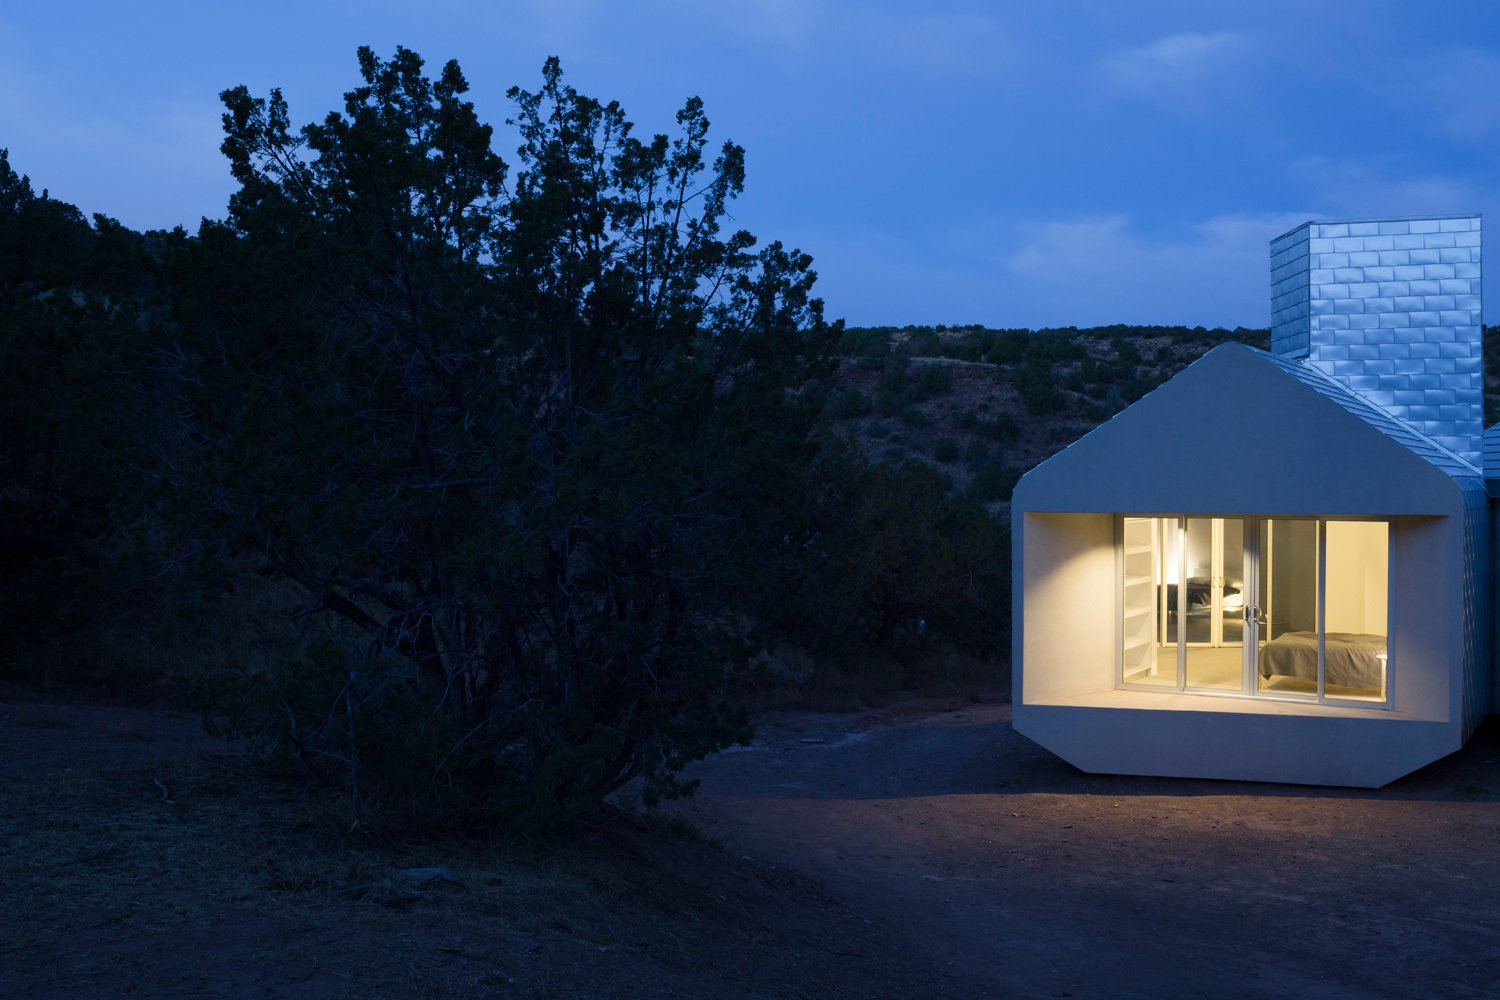 Prefab Units Cluster Together in This Off-the-Grid Guesthouse